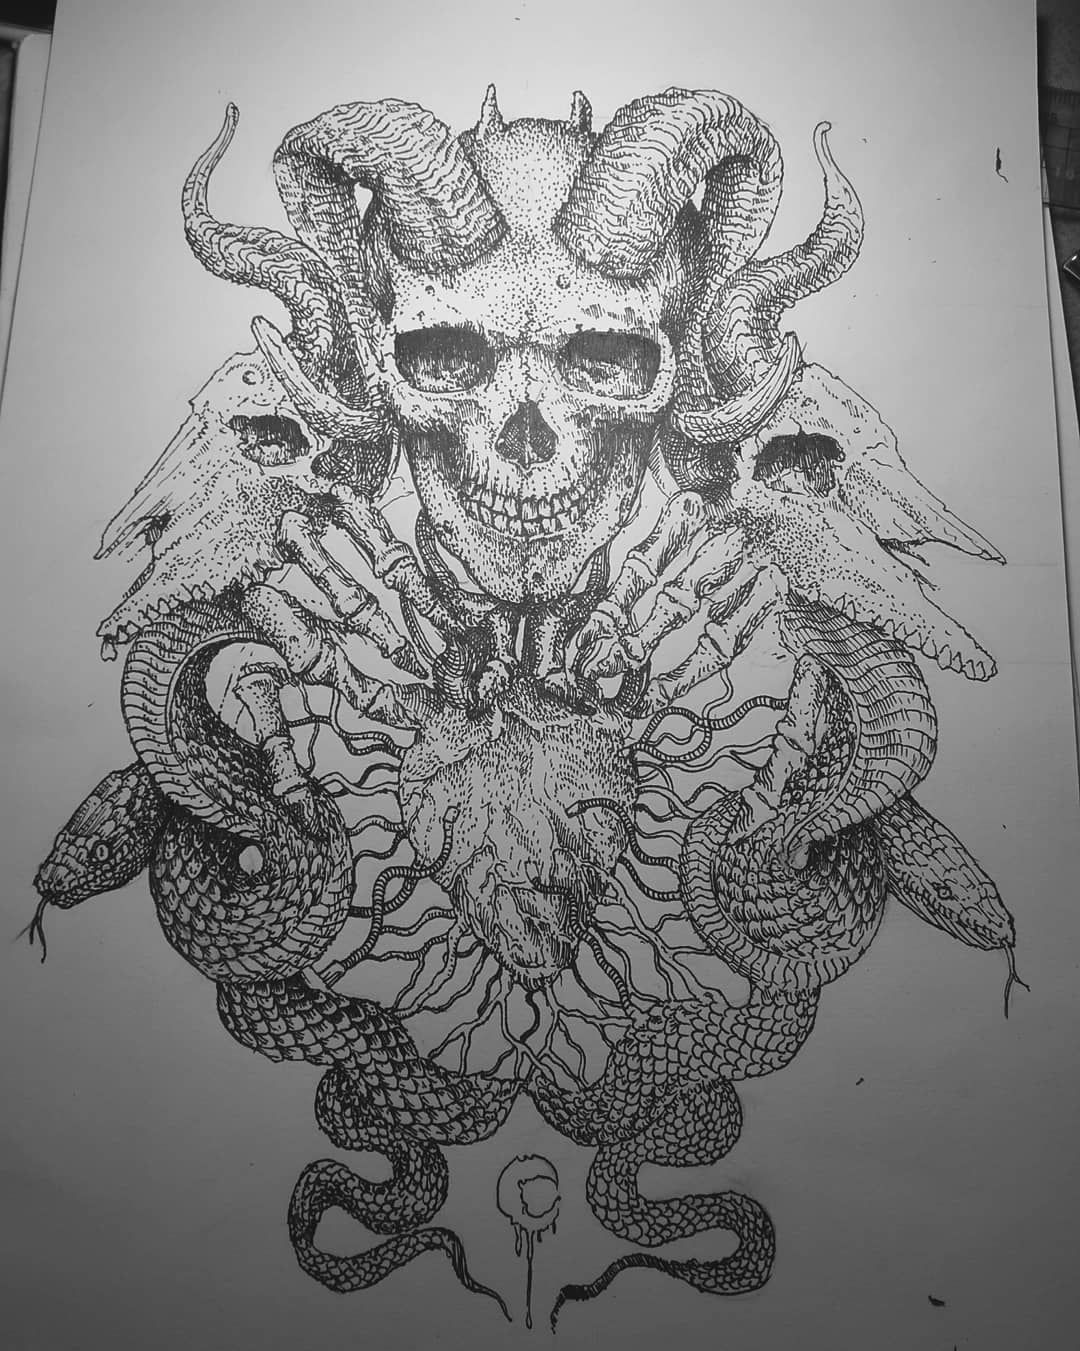 Done live give a touch of color this design is sold if you are interested dm me artforsale darkart skulls artwork art